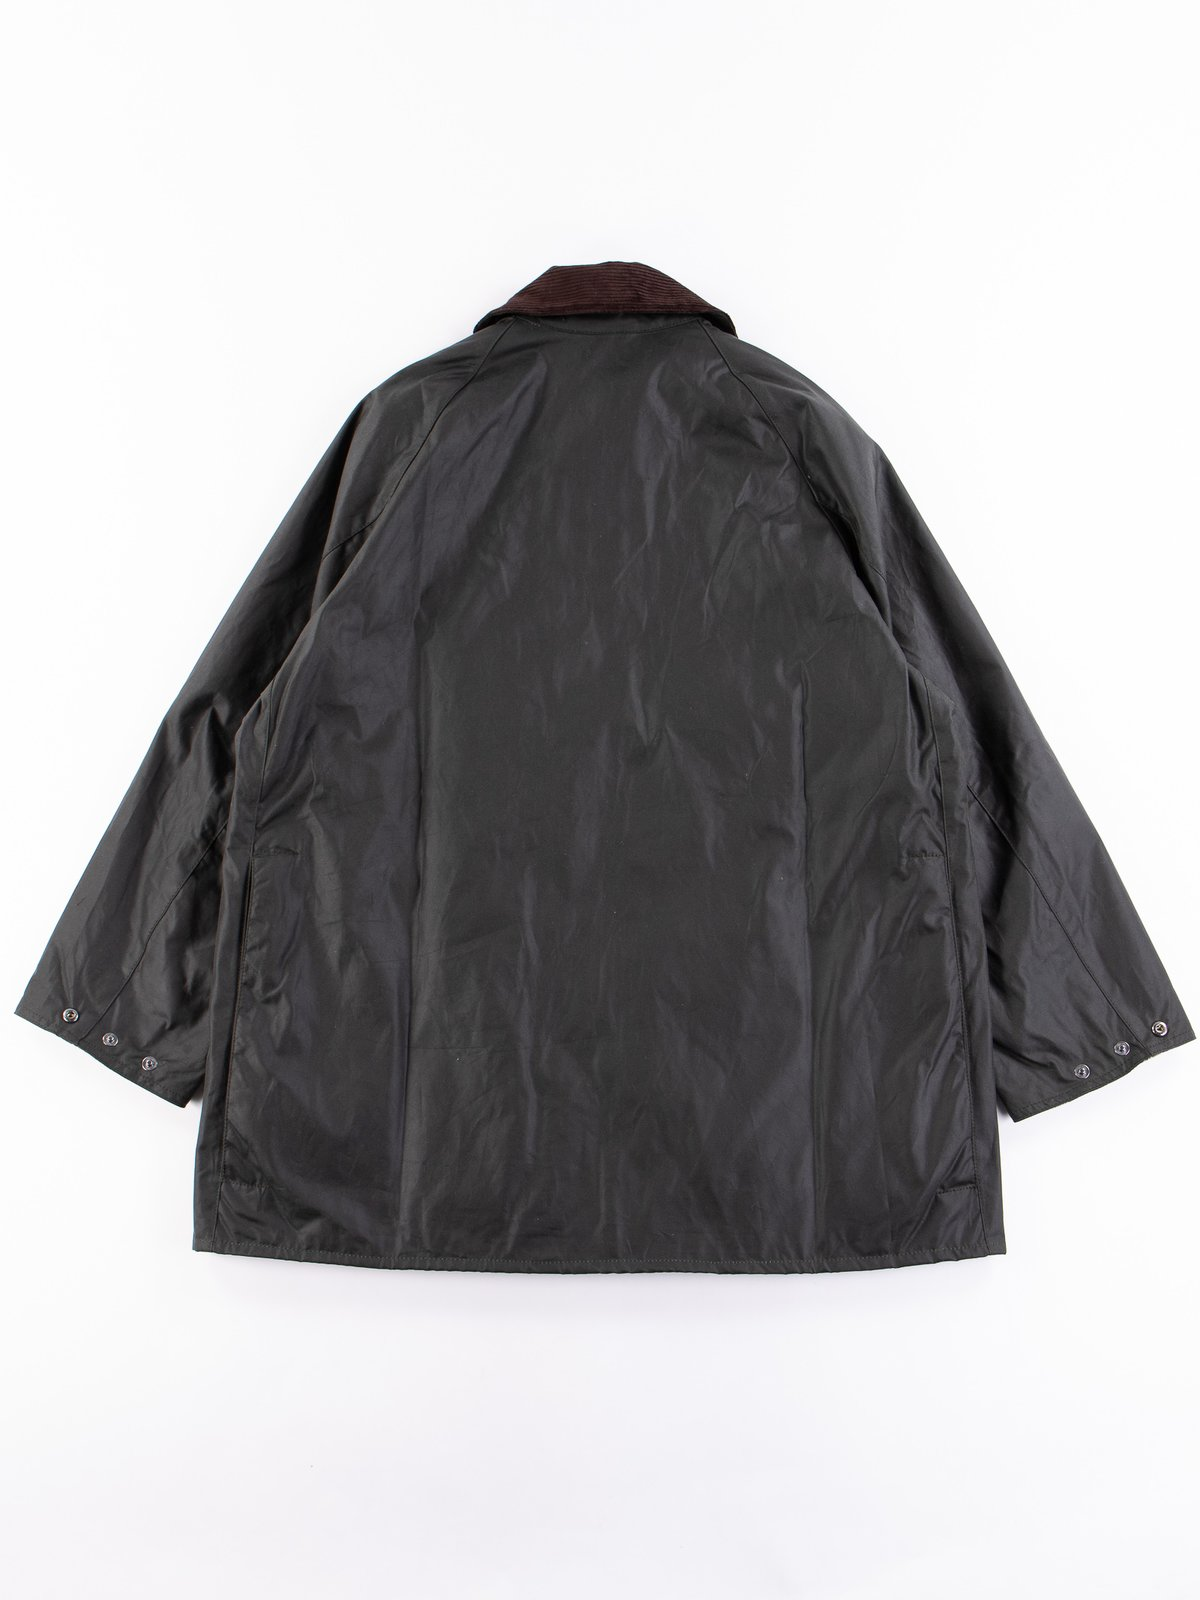 Sage Oversized Beaufort Waxed Cotton Jacket - Image 9